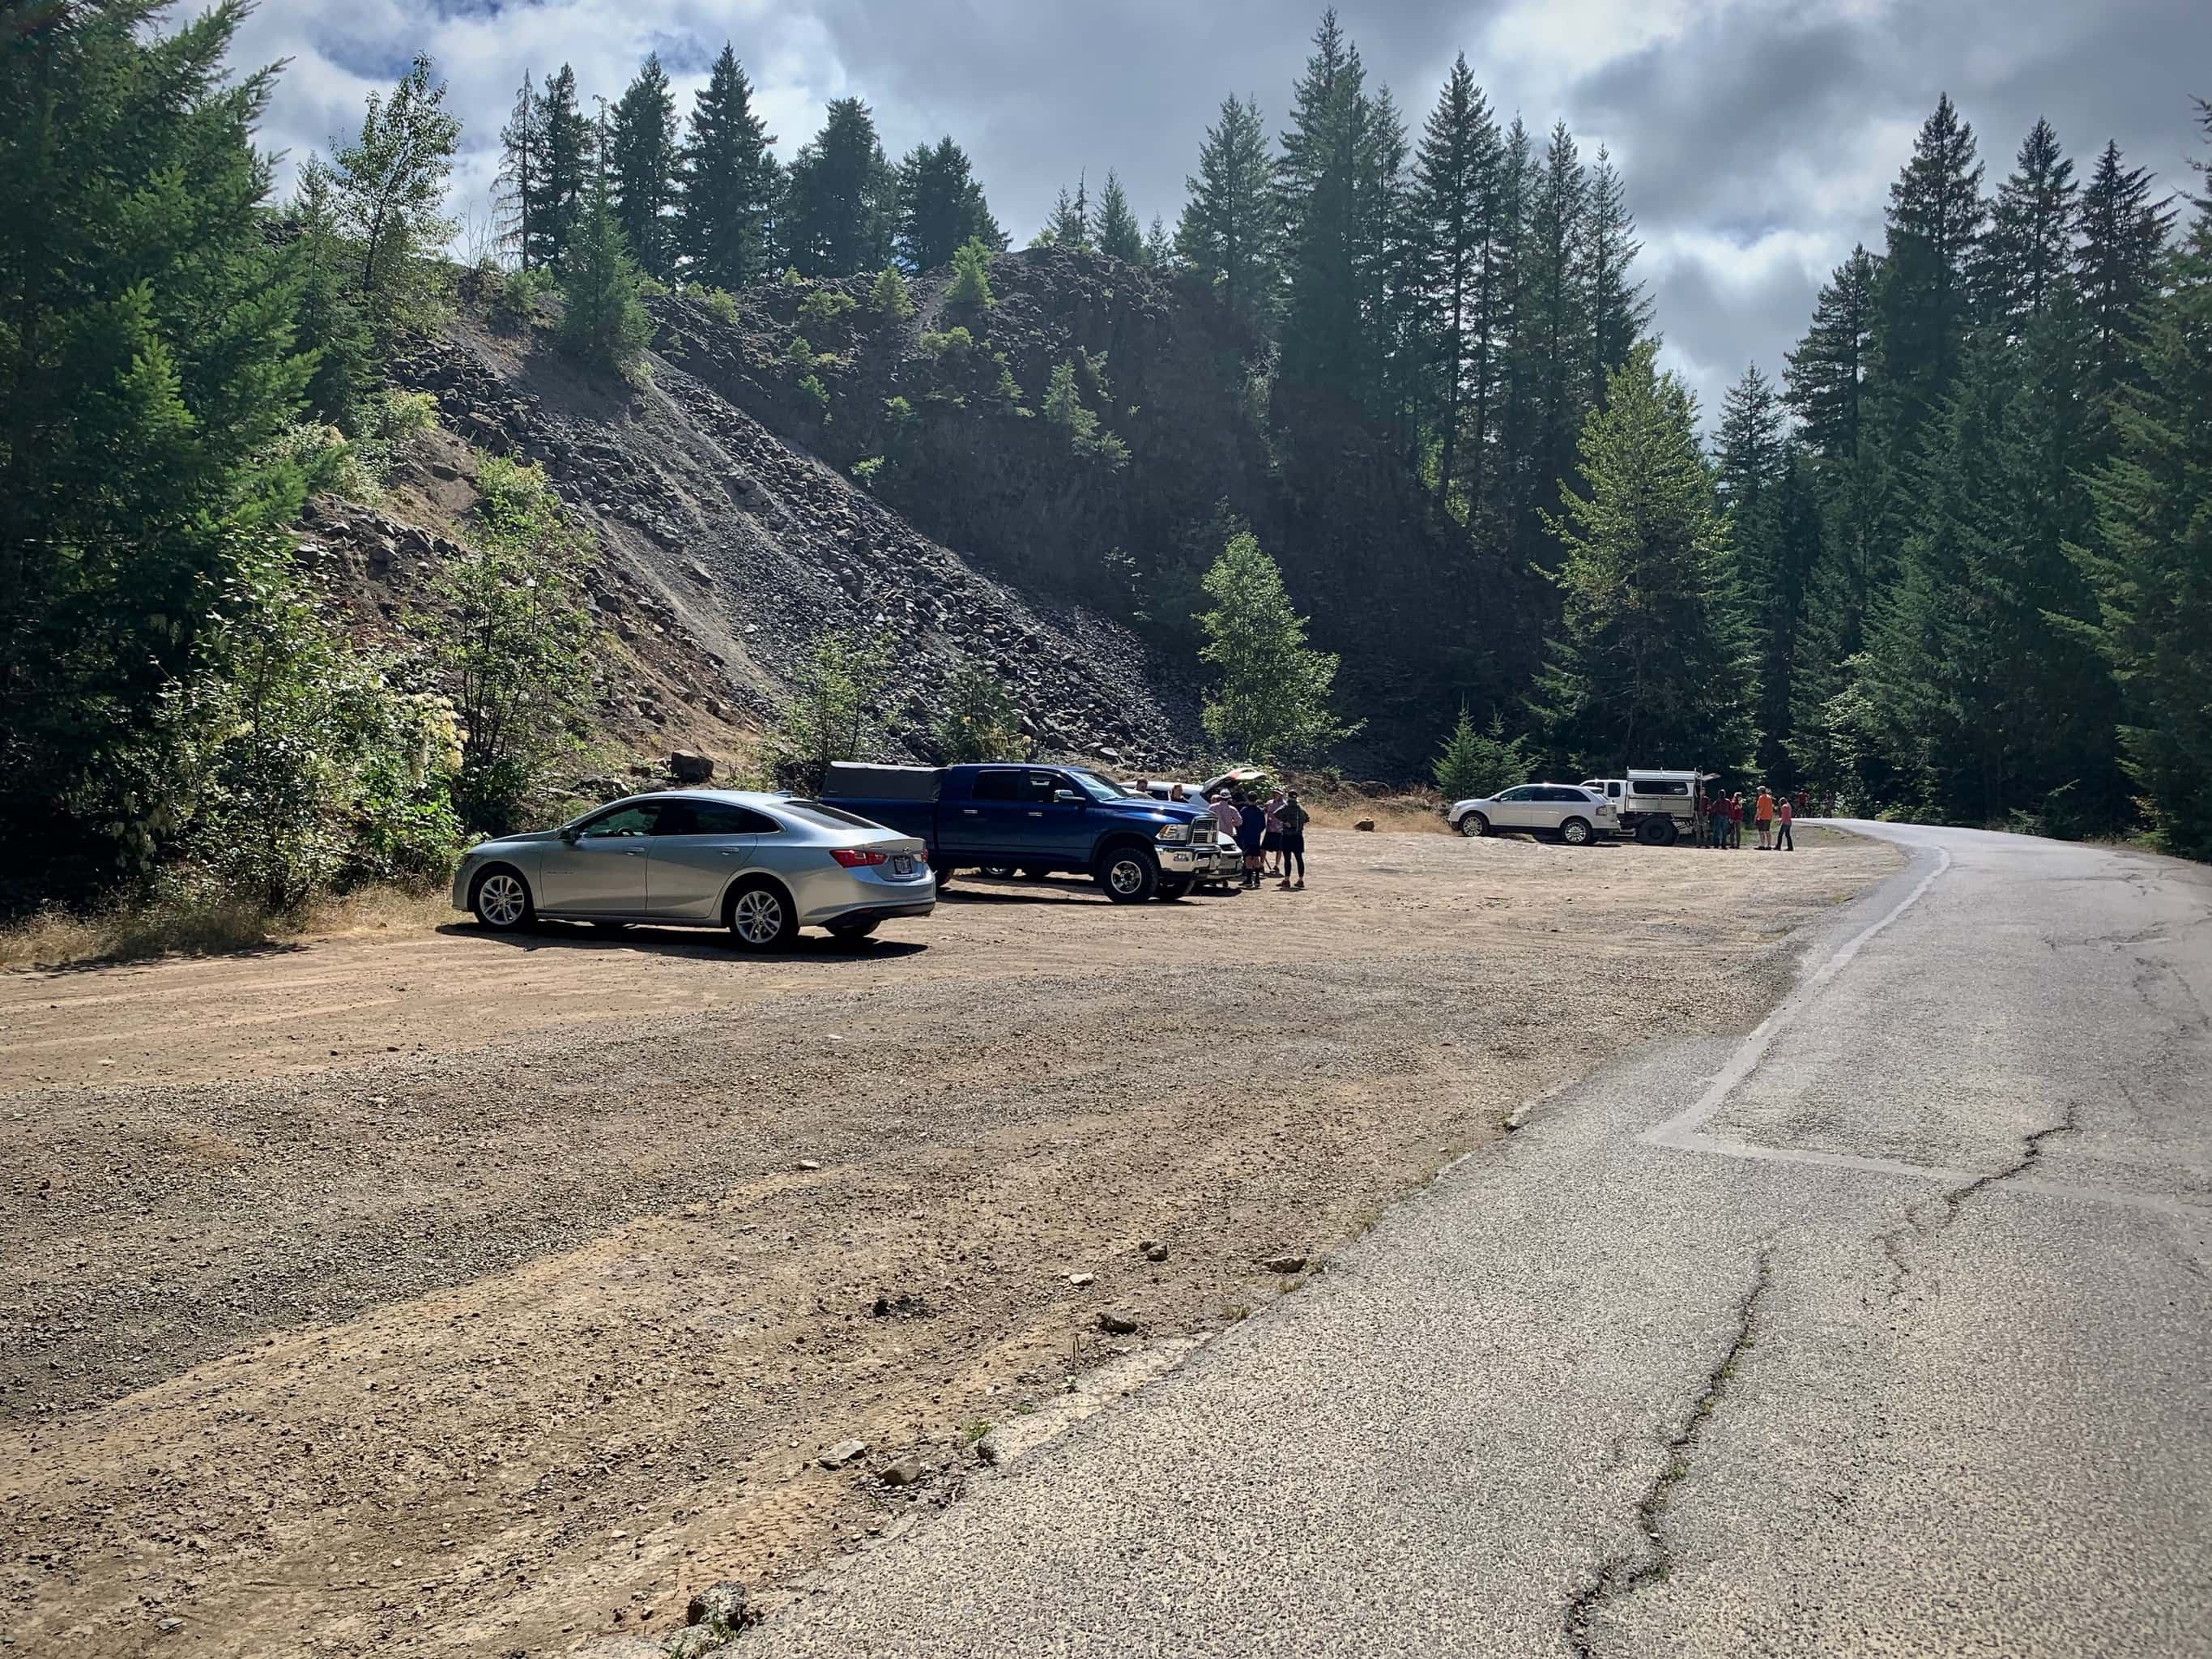 The gravel parking area for Panther Creek falls in Washington state.